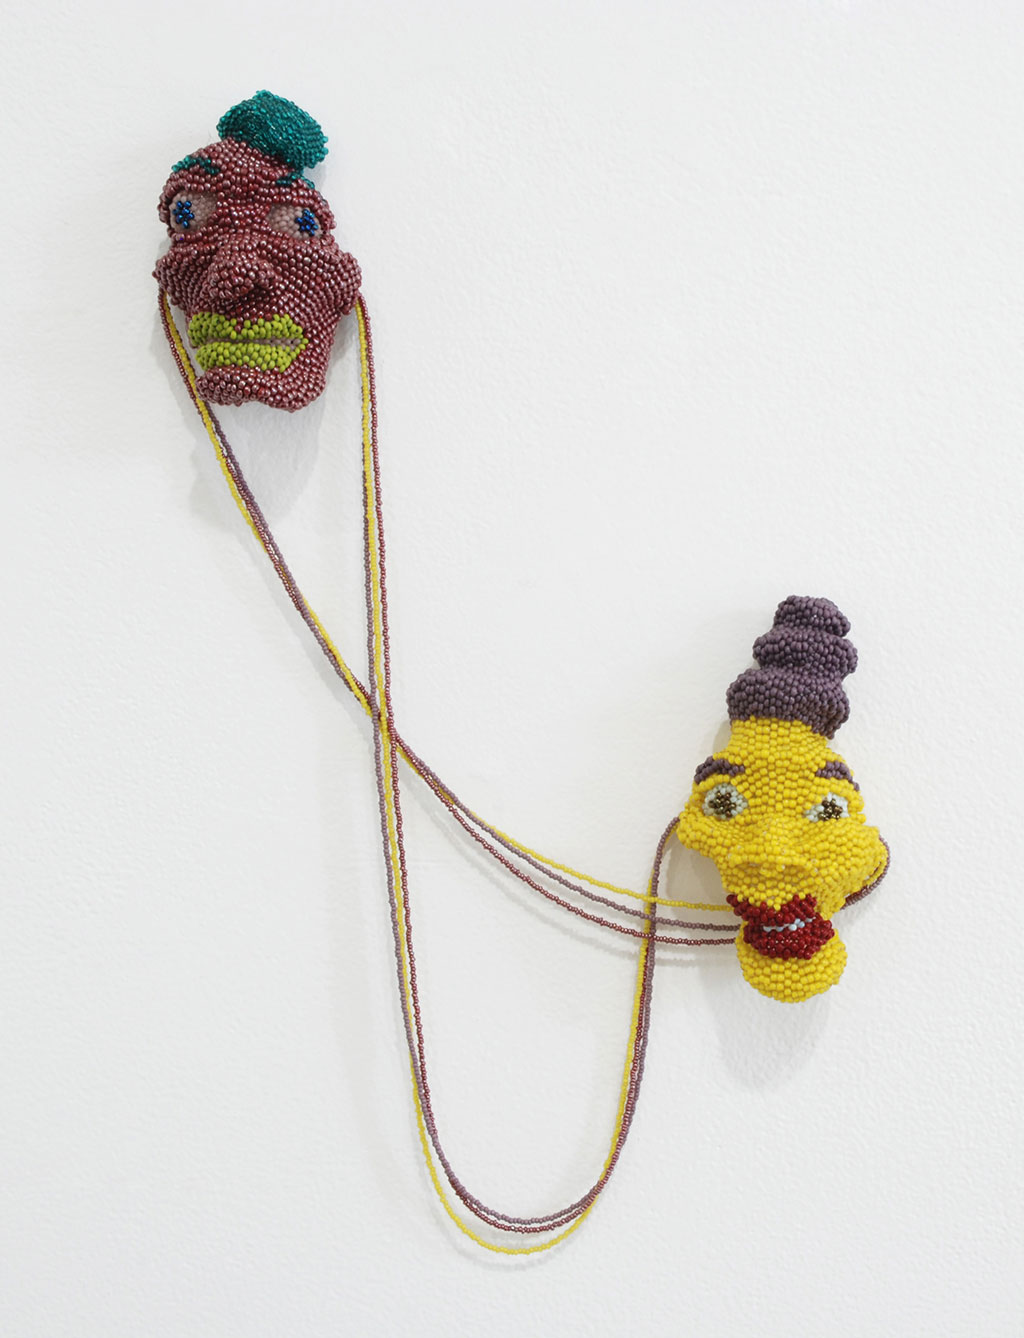 Teresa Sullivan, Bodyguards, 2015, woven glass beads, sculptural freeform peyote stitch and string bead